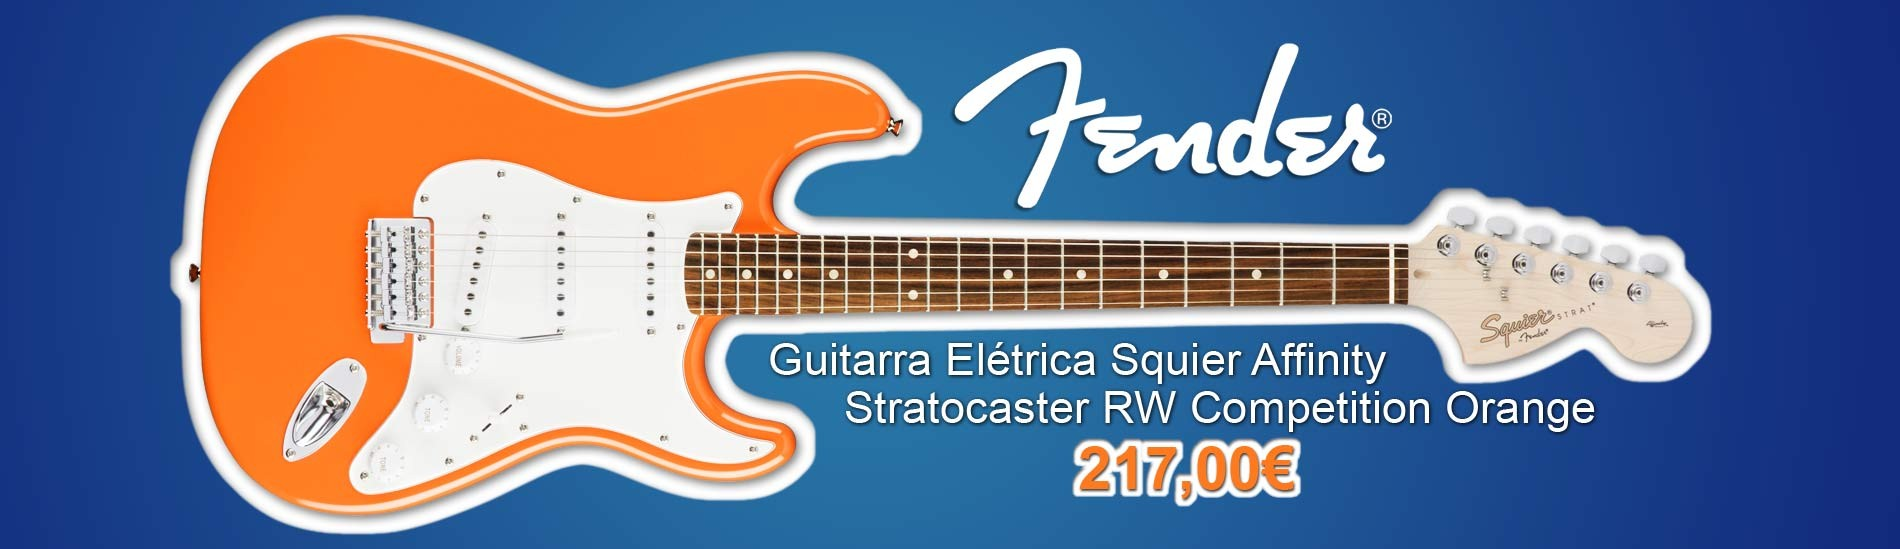 Guitarra Elétrica Fender Squier Affinity Stratocaster RW Competition Orange